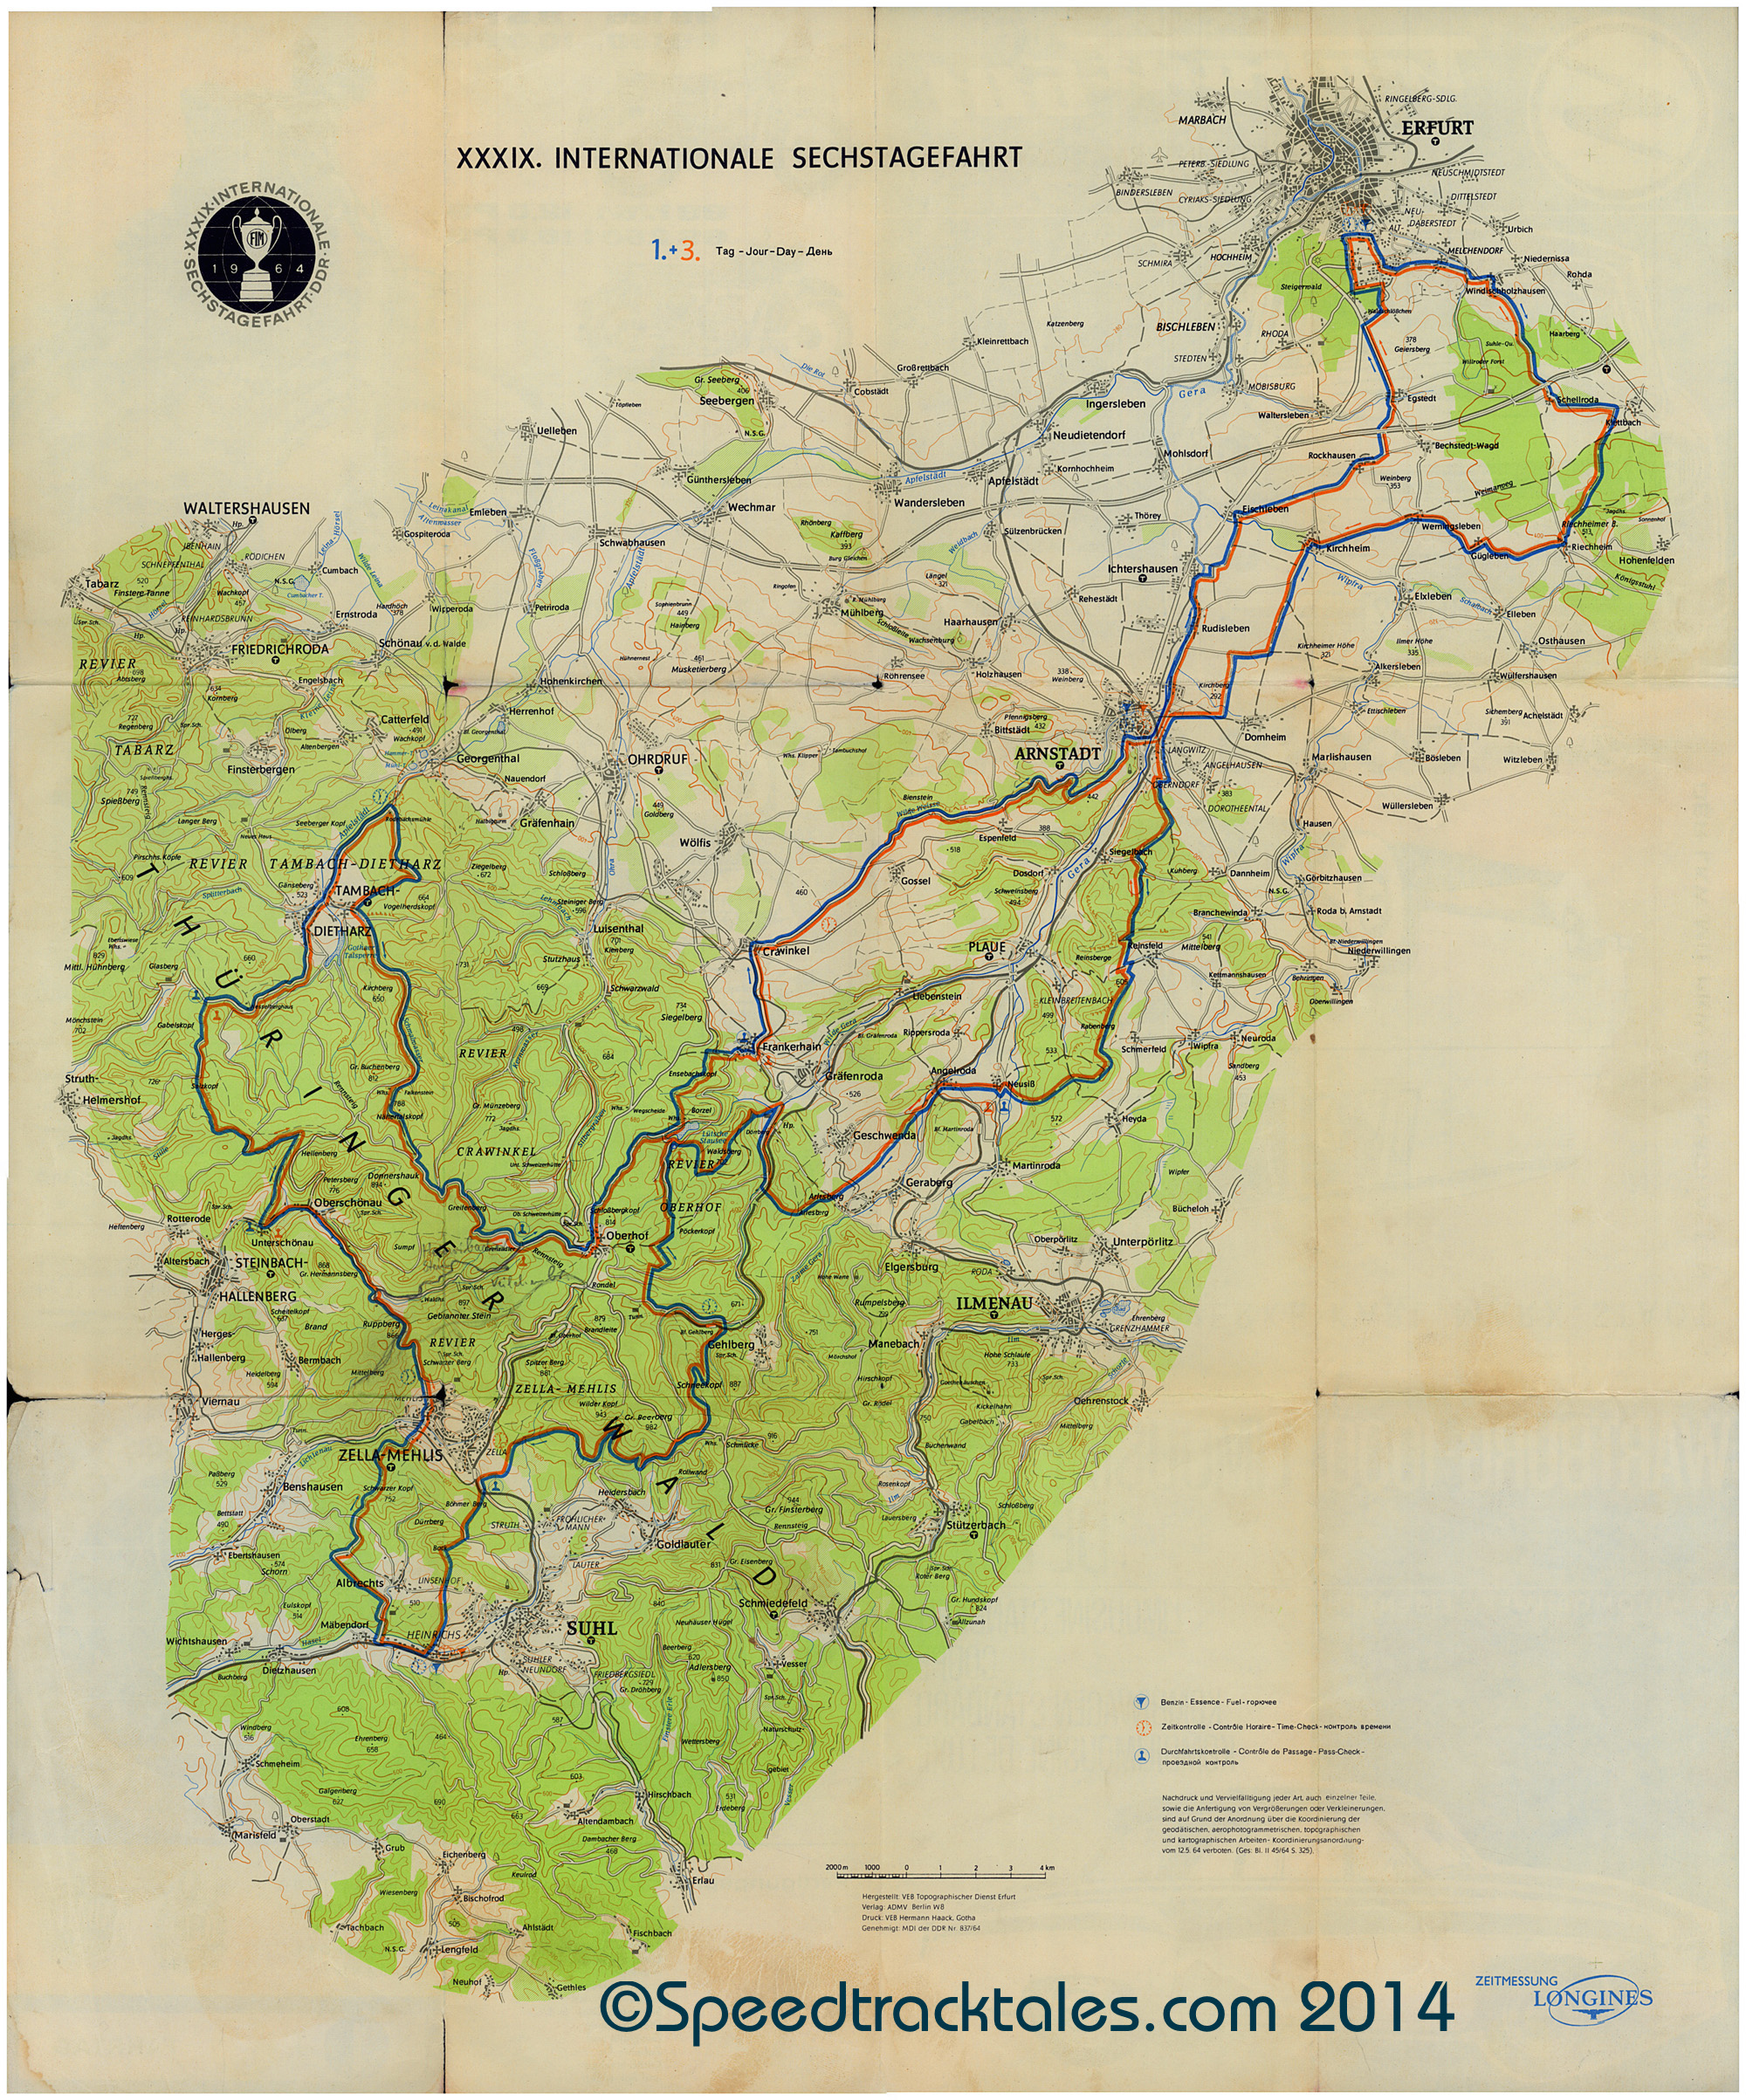 image course map day 1 3 isdt 1964 courtesy harro esmarch collection